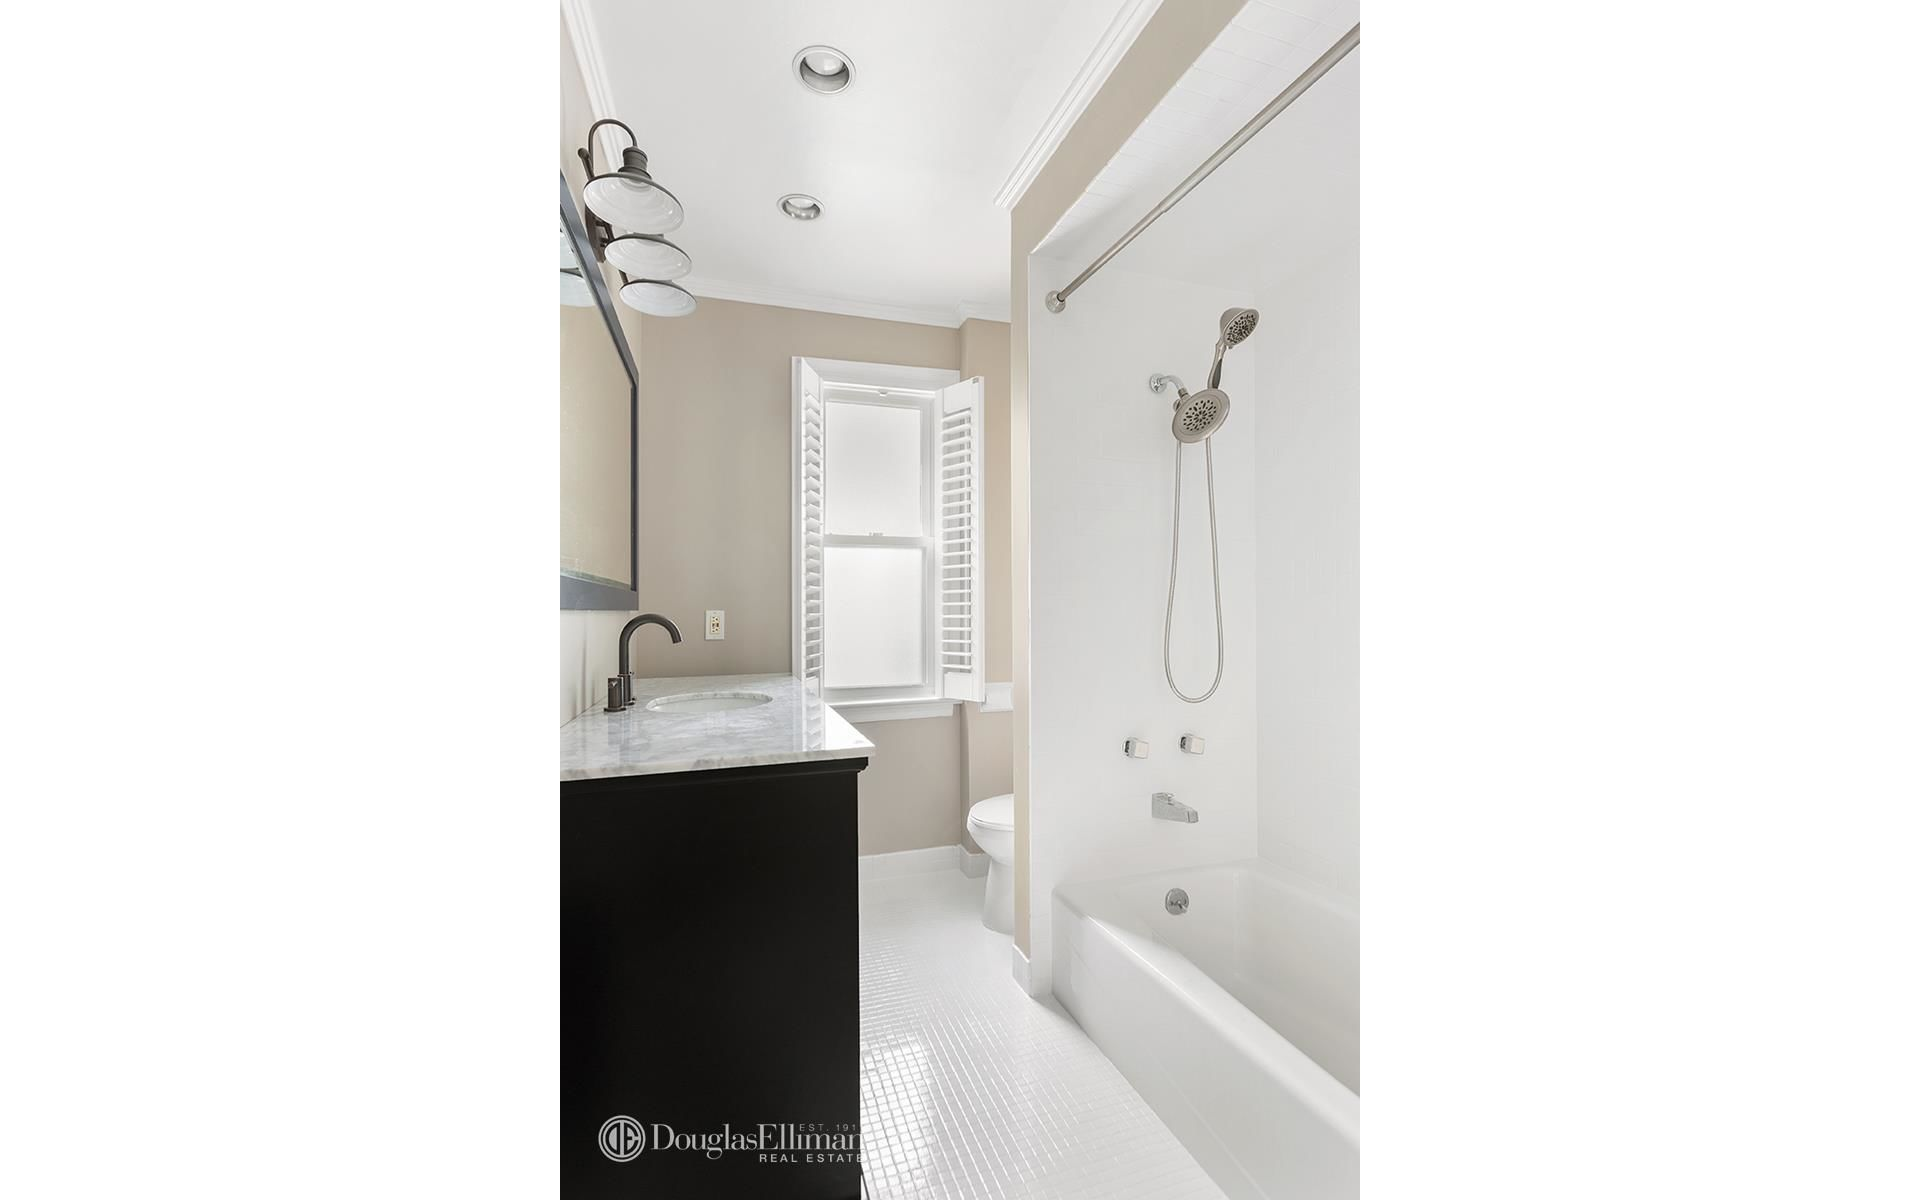 498 Westminster Rd Photo 16 - ELLIMAN-4609557